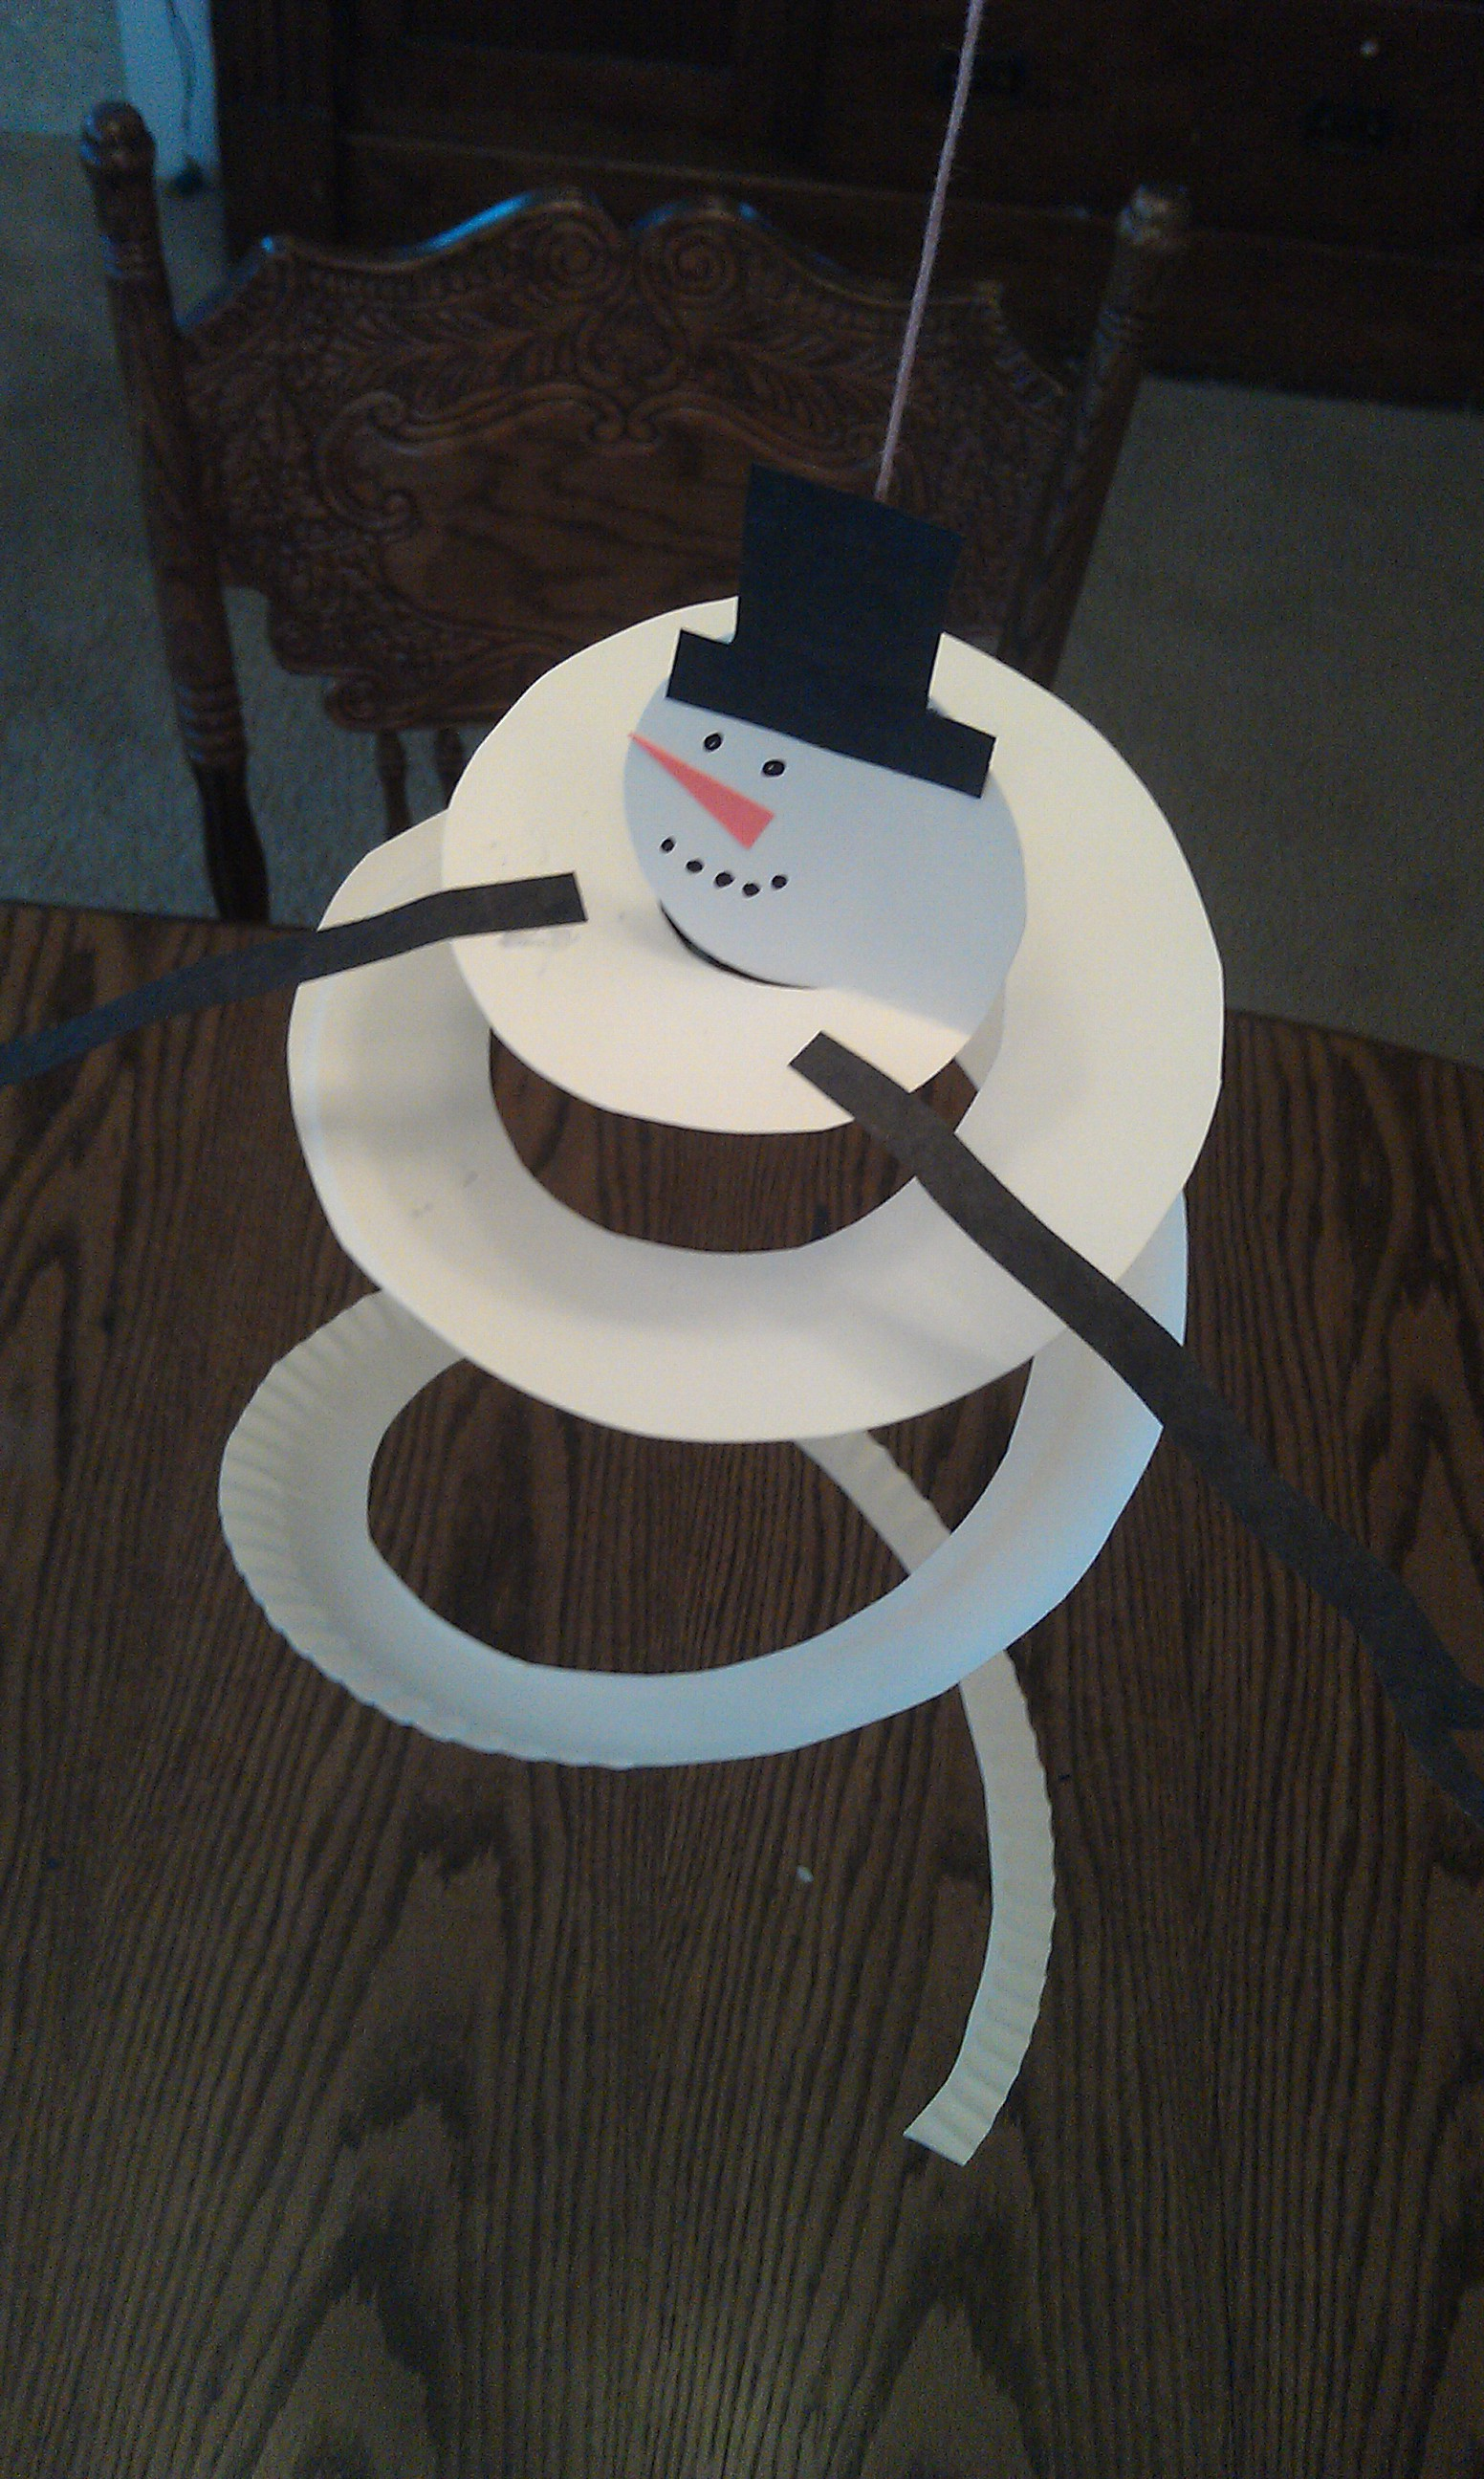 Cut a spiral out of your paper plate. & Snowman Mobile Craft from a Paper Plate | Woo! Jr. Kids Activities